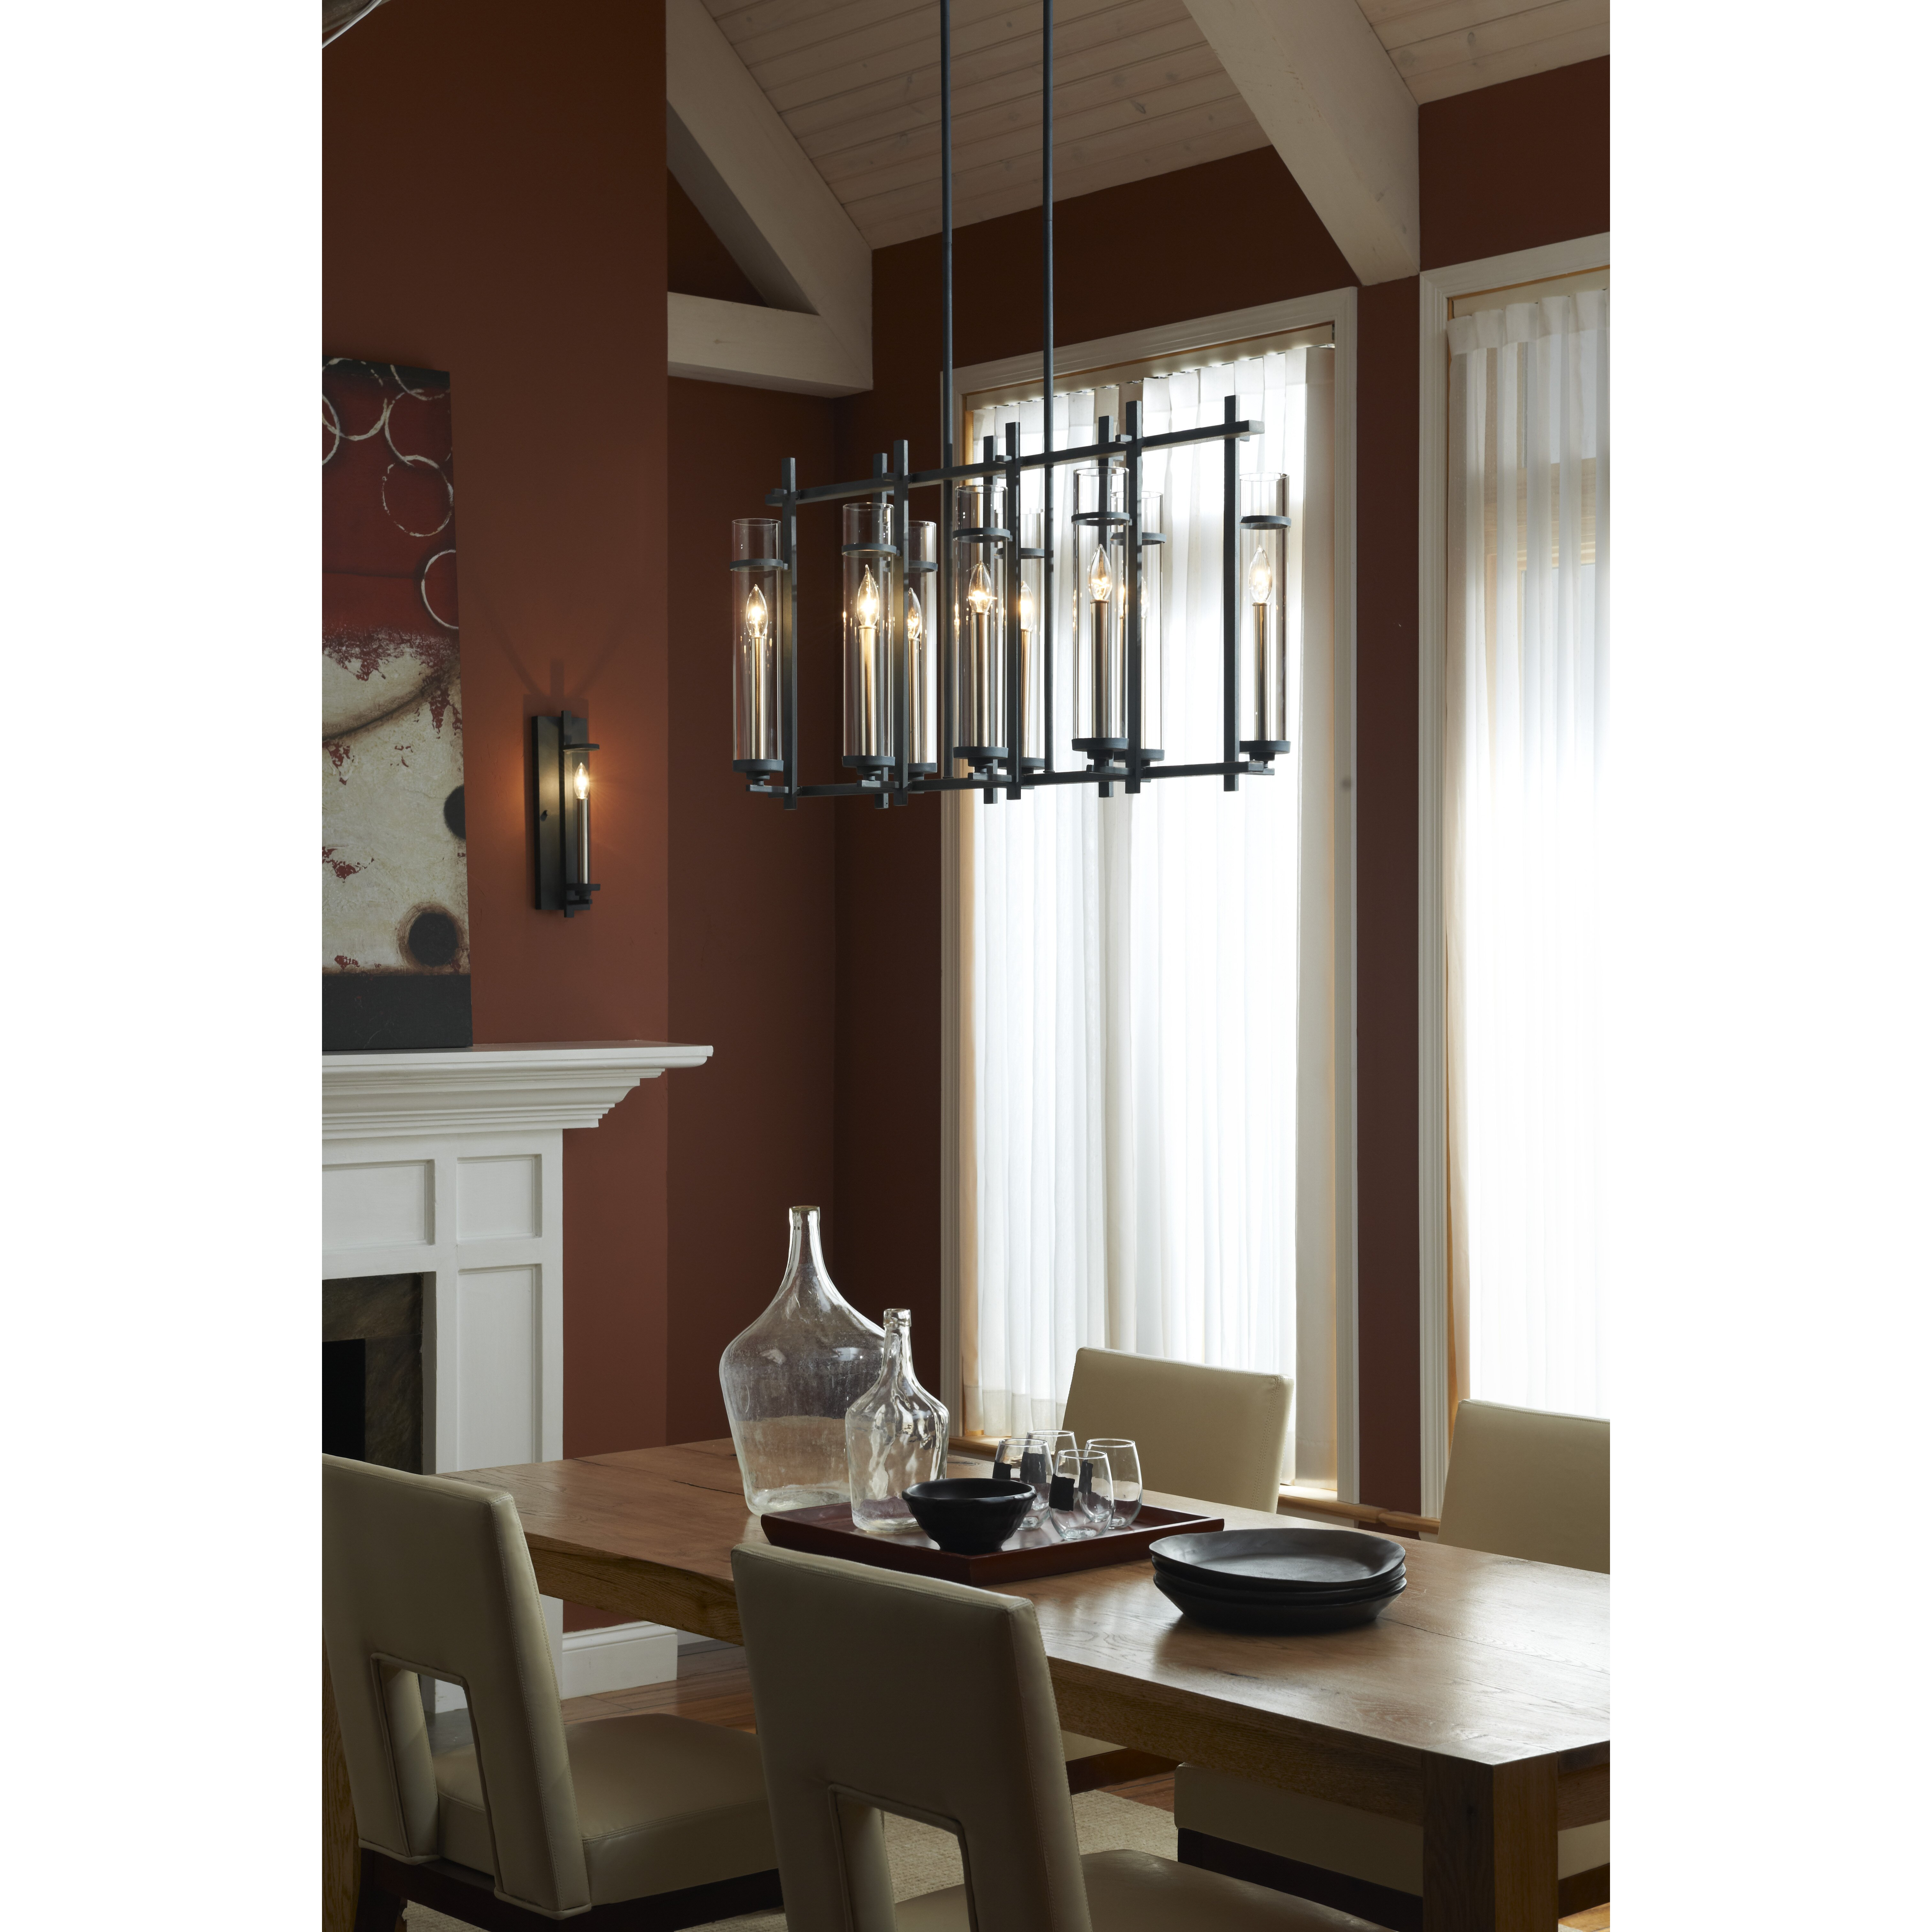 Country Kitchen Yucca Valley: Trent Austin Design Yucca Valley 1 Light Candle Sconce